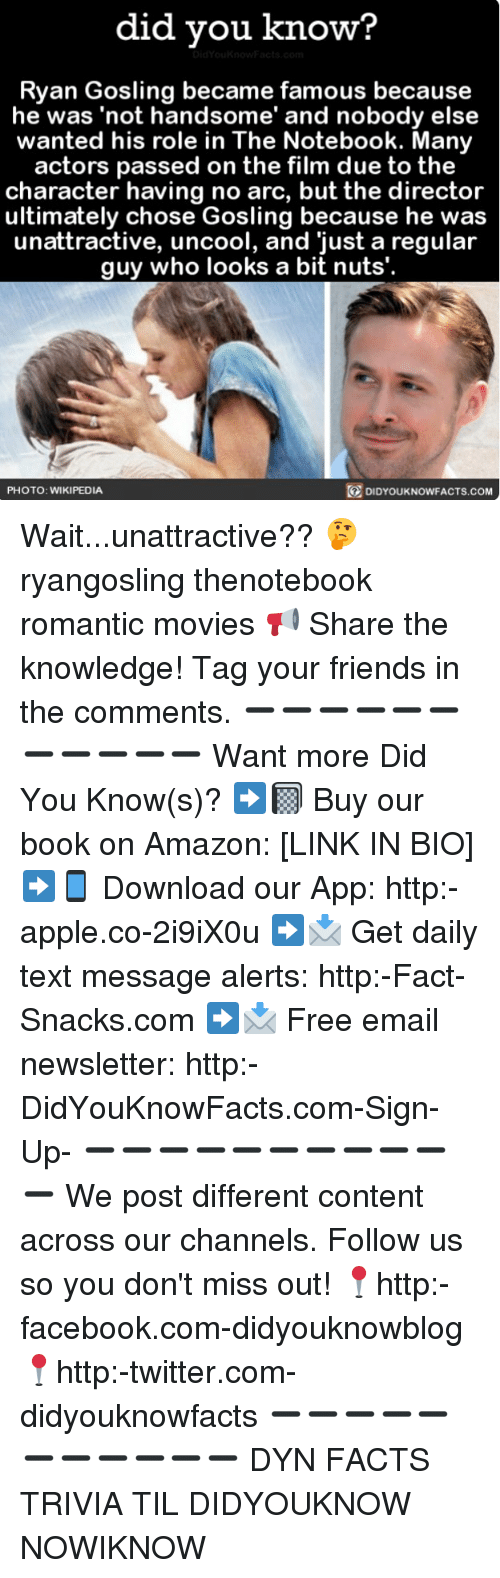 Amazon, Apple, and Facebook: did vou know?  Ryan Gosling became famous because  he was 'not handsome' and nobody else  wanted his role in The Notebook. Many  actors passed on the film due to the  character having no arc, but the director  ultimately chose Gosling because he was  unattractive, uncool, and 'just a regular  guy who looks a bit nuts'.  DIDYOUKNOWFACTS.coM  PHOTO: WIKIPEDIA Wait...unattractive?? 🤔 ryangosling thenotebook romantic movies 📢 Share the knowledge! Tag your friends in the comments. ➖➖➖➖➖➖➖➖➖➖➖ Want more Did You Know(s)? ➡📓 Buy our book on Amazon: [LINK IN BIO] ➡📱 Download our App: http:-apple.co-2i9iX0u ➡📩 Get daily text message alerts: http:-Fact-Snacks.com ➡📩 Free email newsletter: http:-DidYouKnowFacts.com-Sign-Up- ➖➖➖➖➖➖➖➖➖➖➖ We post different content across our channels. Follow us so you don't miss out! 📍http:-facebook.com-didyouknowblog 📍http:-twitter.com-didyouknowfacts ➖➖➖➖➖➖➖➖➖➖➖ DYN FACTS TRIVIA TIL DIDYOUKNOW NOWIKNOW